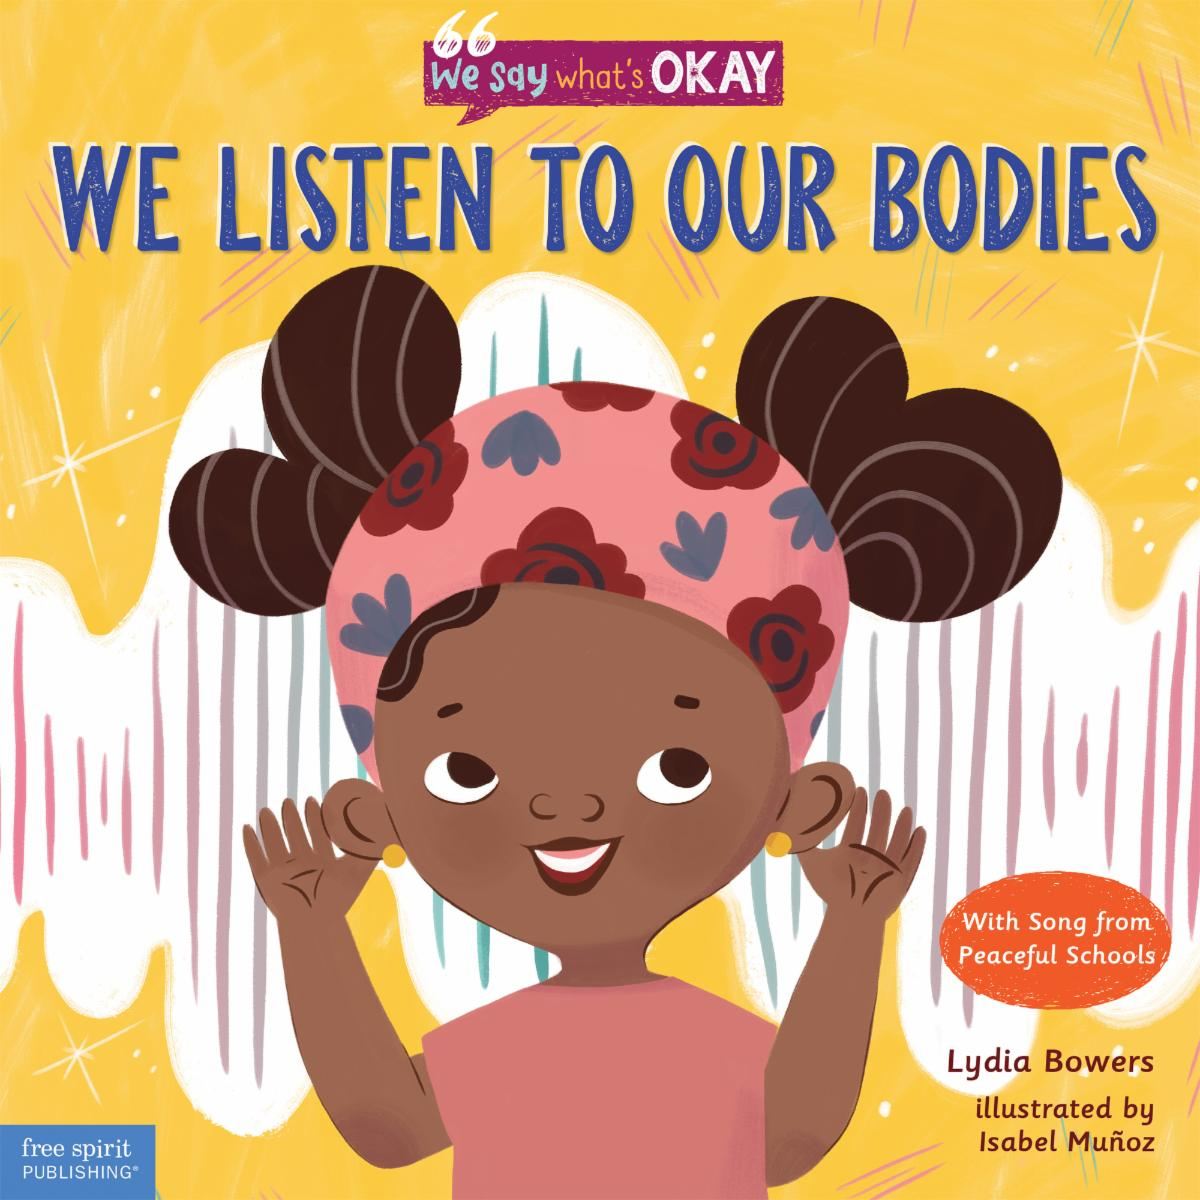 We Listen to Our Bodies